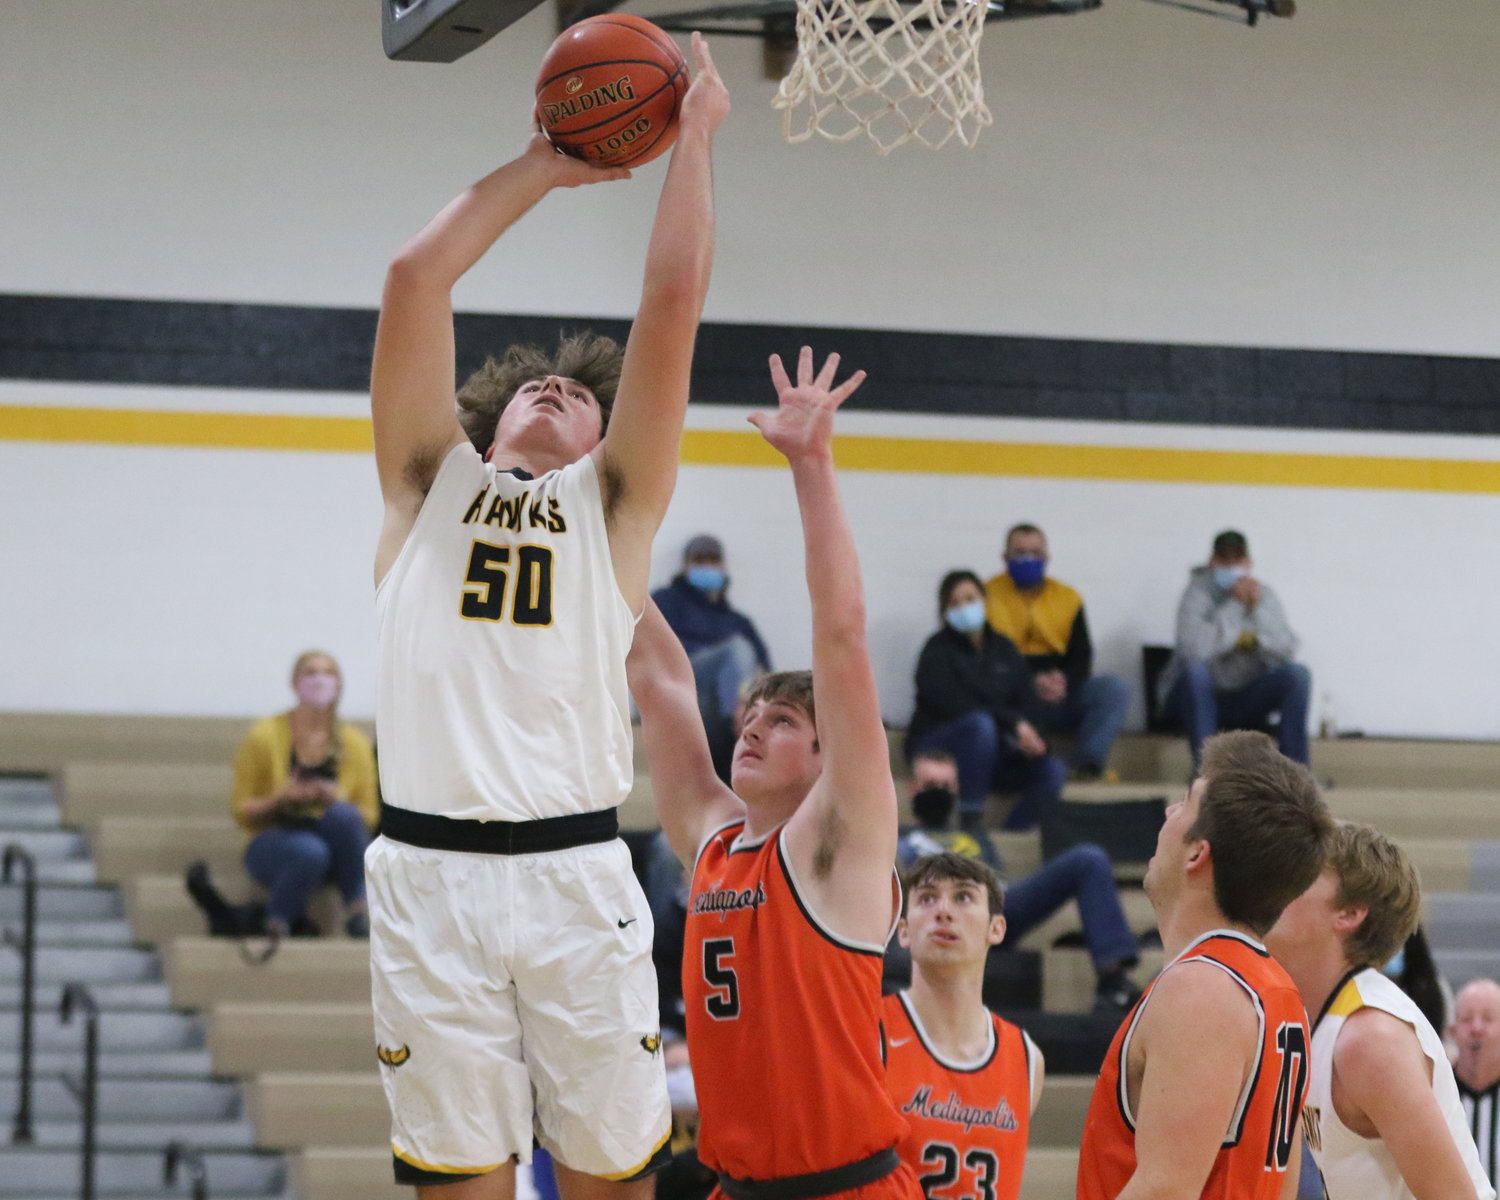 Aidan Rath puts up a shot in the paint during the first quarter of a scrimmage with Mediapolis in Wellman on Saturday, November 21.